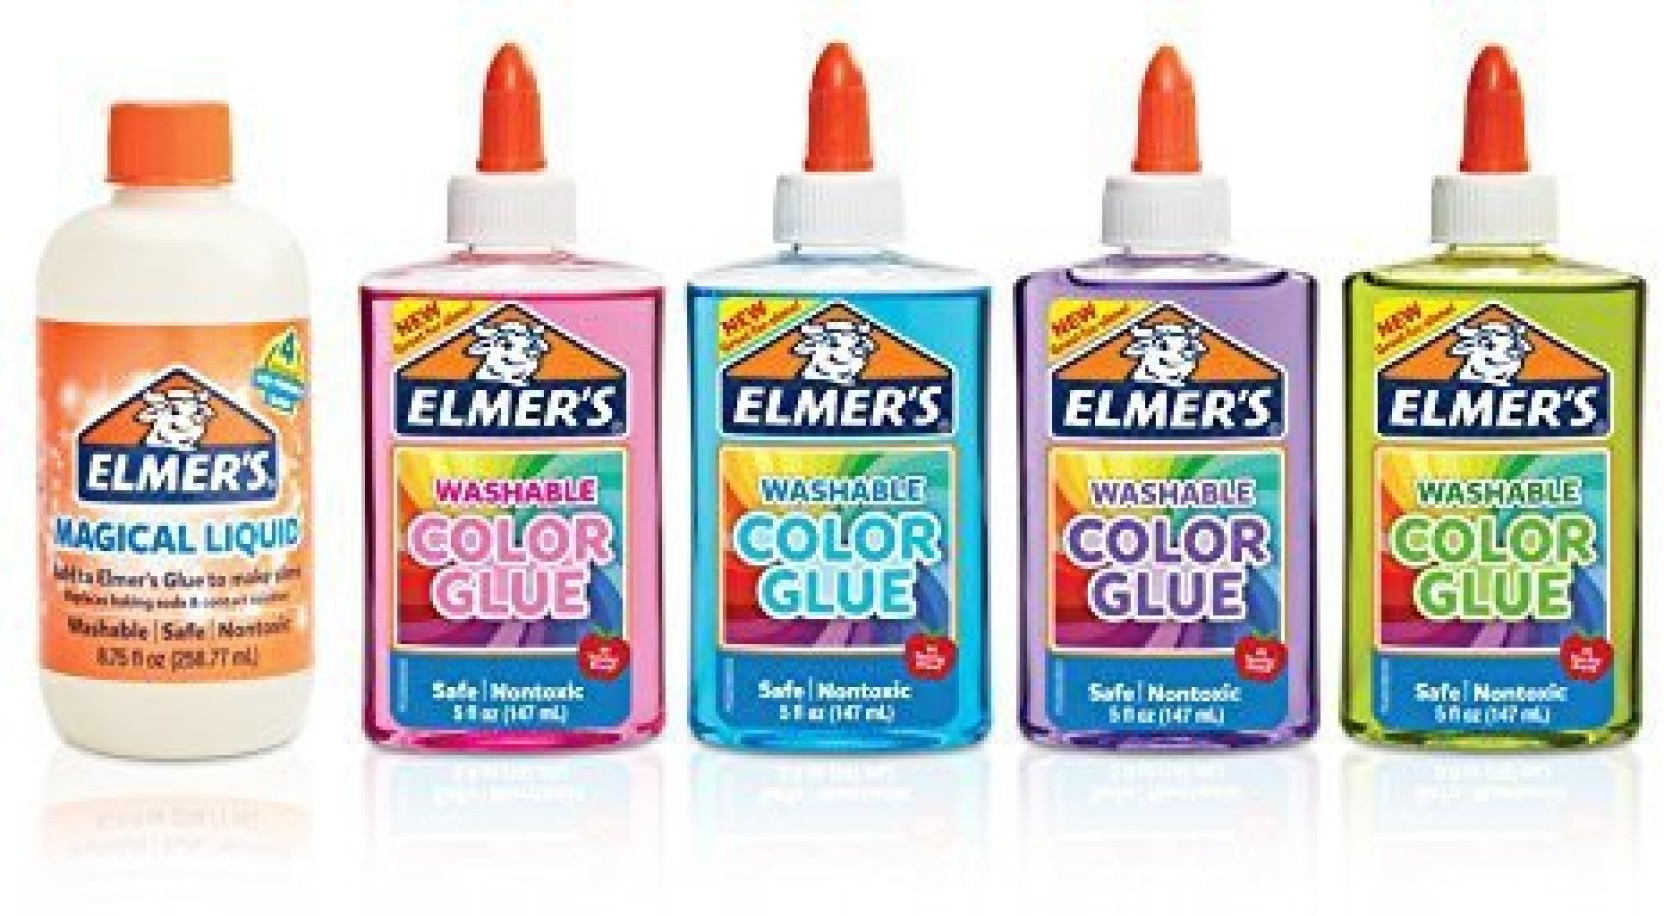 timeless design 9fe84 4b2bd Generic Elmers Magical Liquid - Slime Activator and Elmers Translucent  Color Glue, Washable, Pink, Blue, Purple, Green, 5 Ounces Each - Great For  Making ...